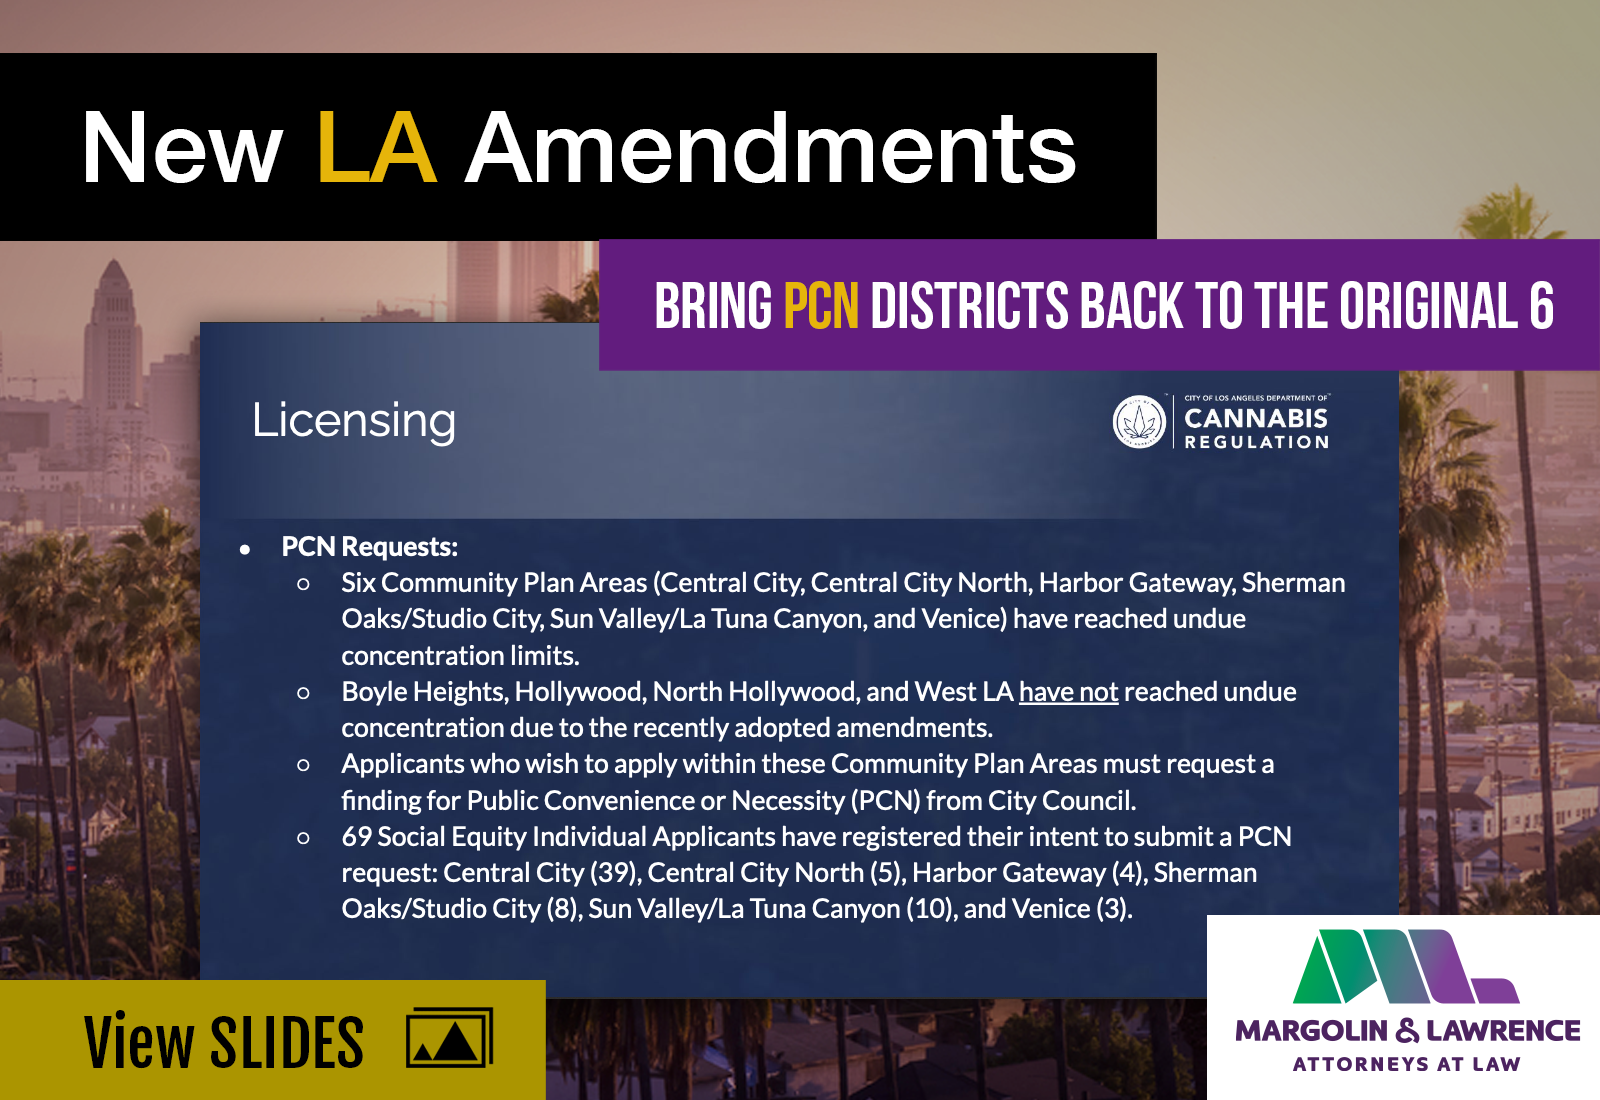 New LA Amendments Bring PCN Districts Back to the Original 6